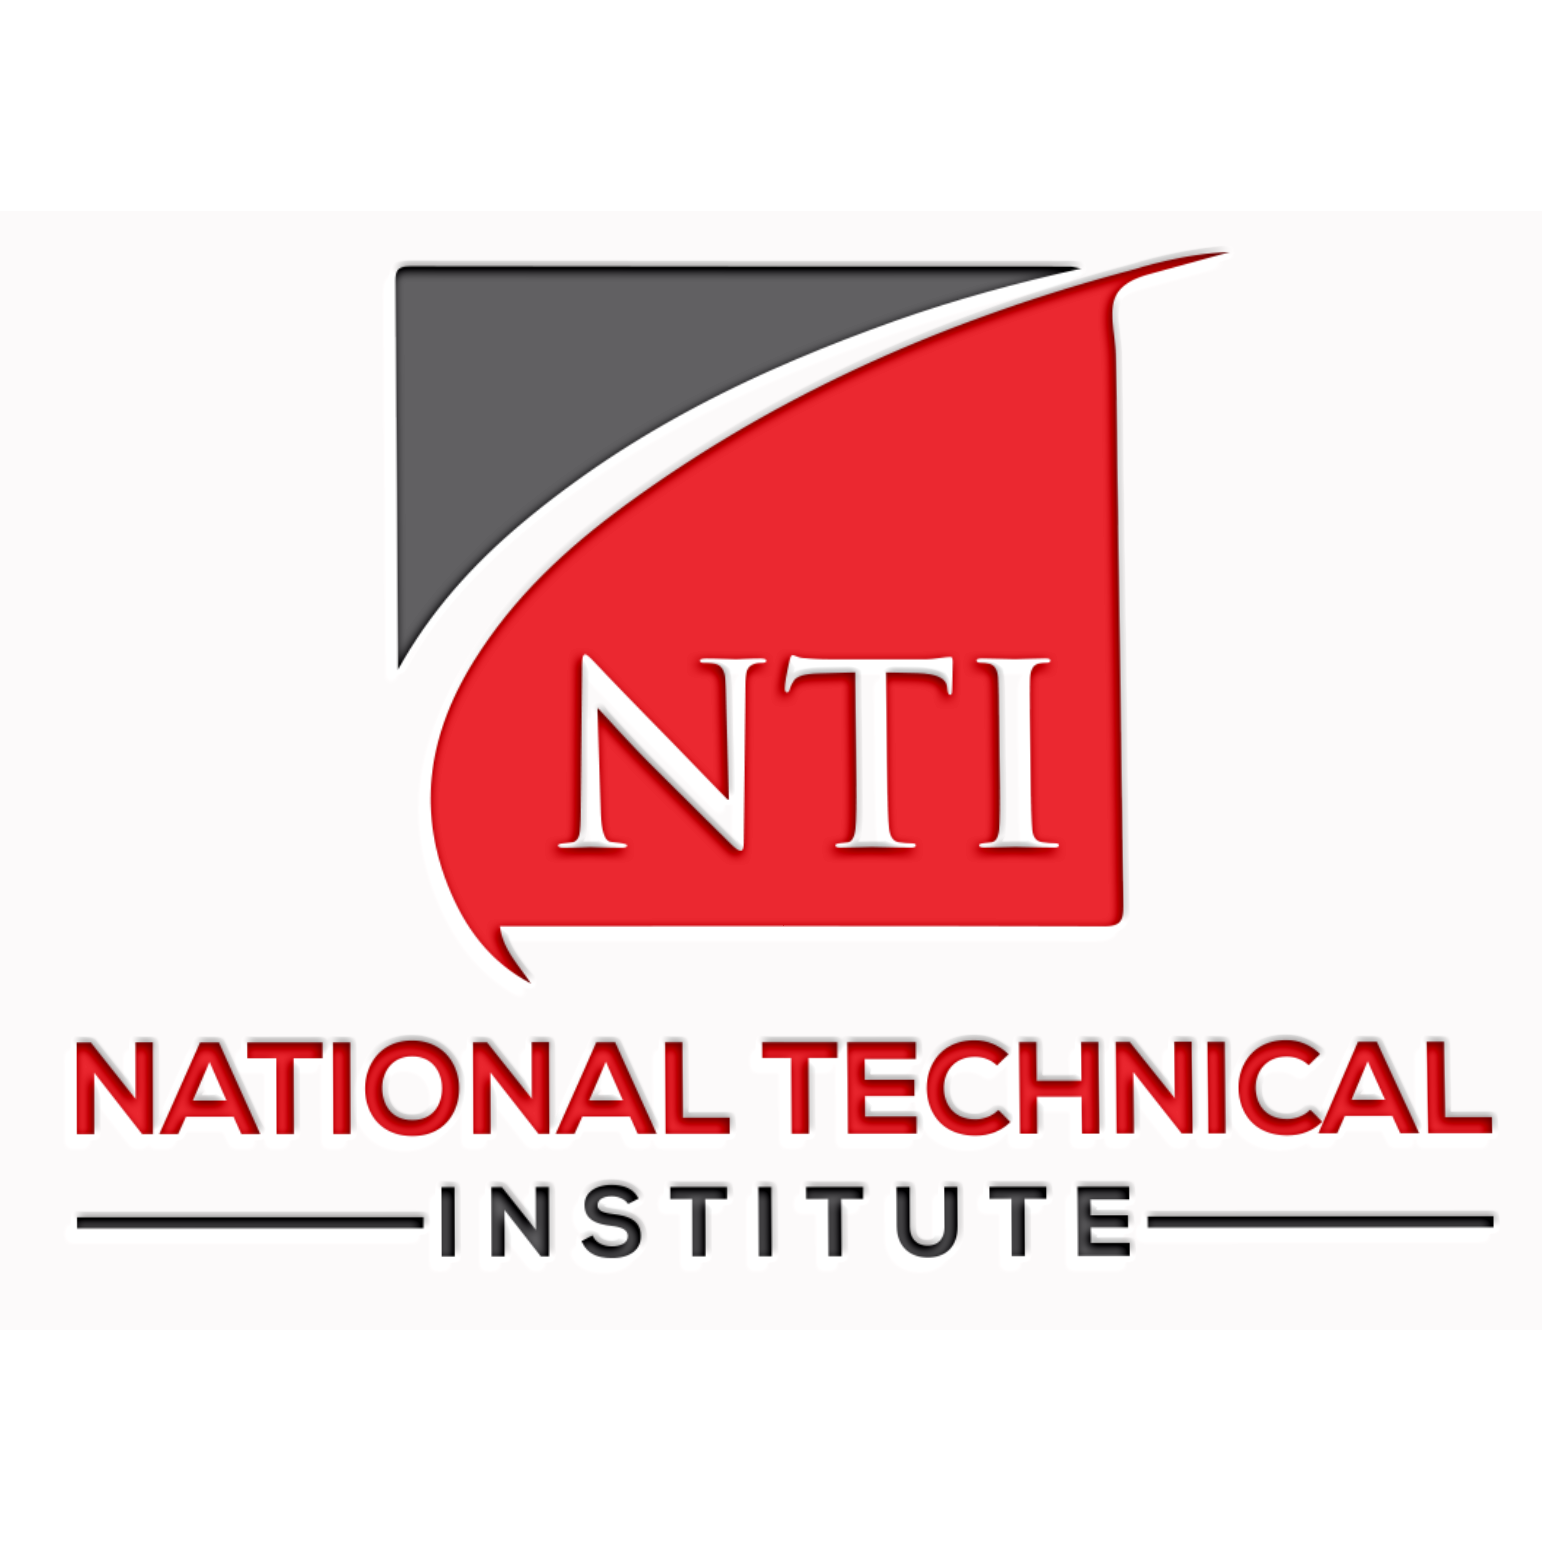 National Technical Institute - Henderson, NV 89014 - (702)948-9000 | ShowMeLocal.com